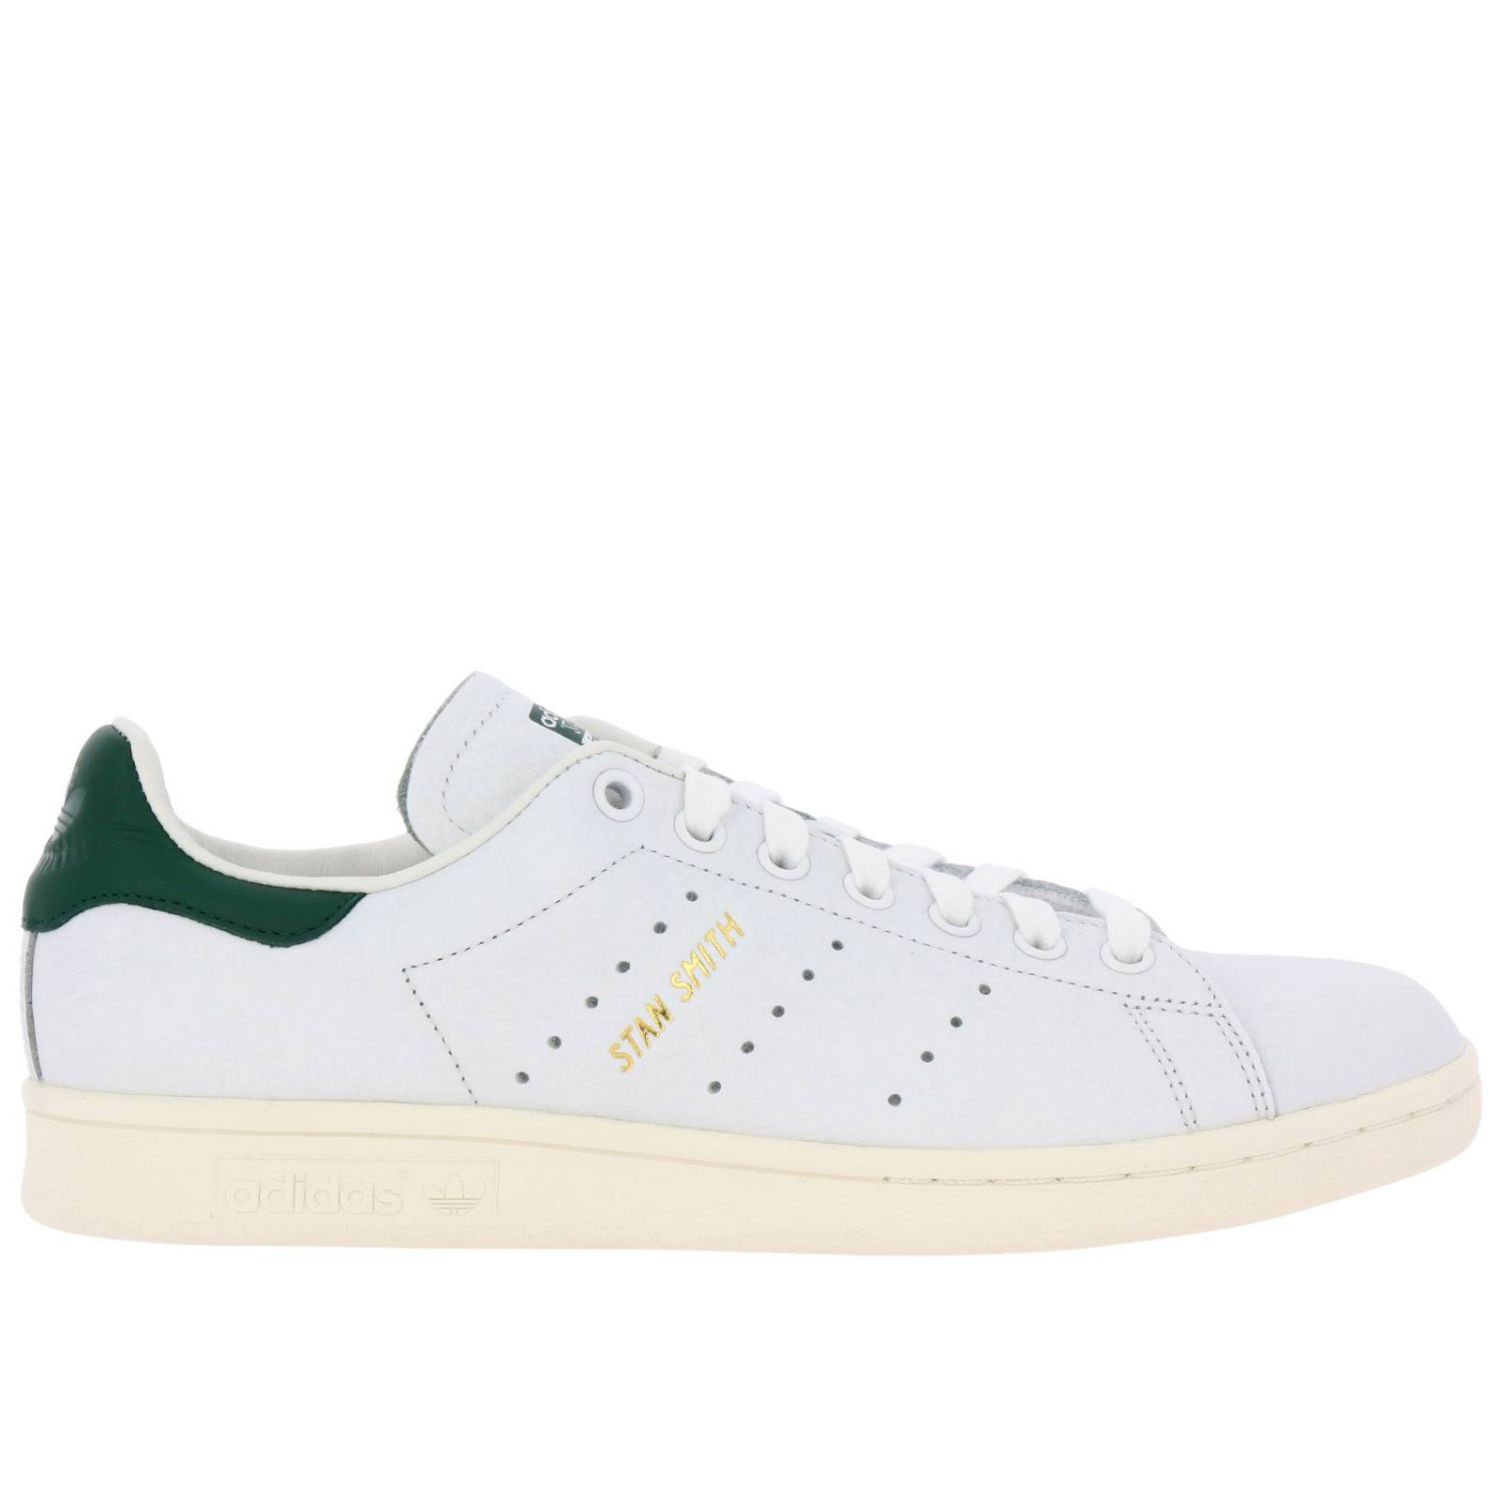 Sneakers Adidas Originals: Stan Smith Adidas Originals Sneakers in smooth leather white 1